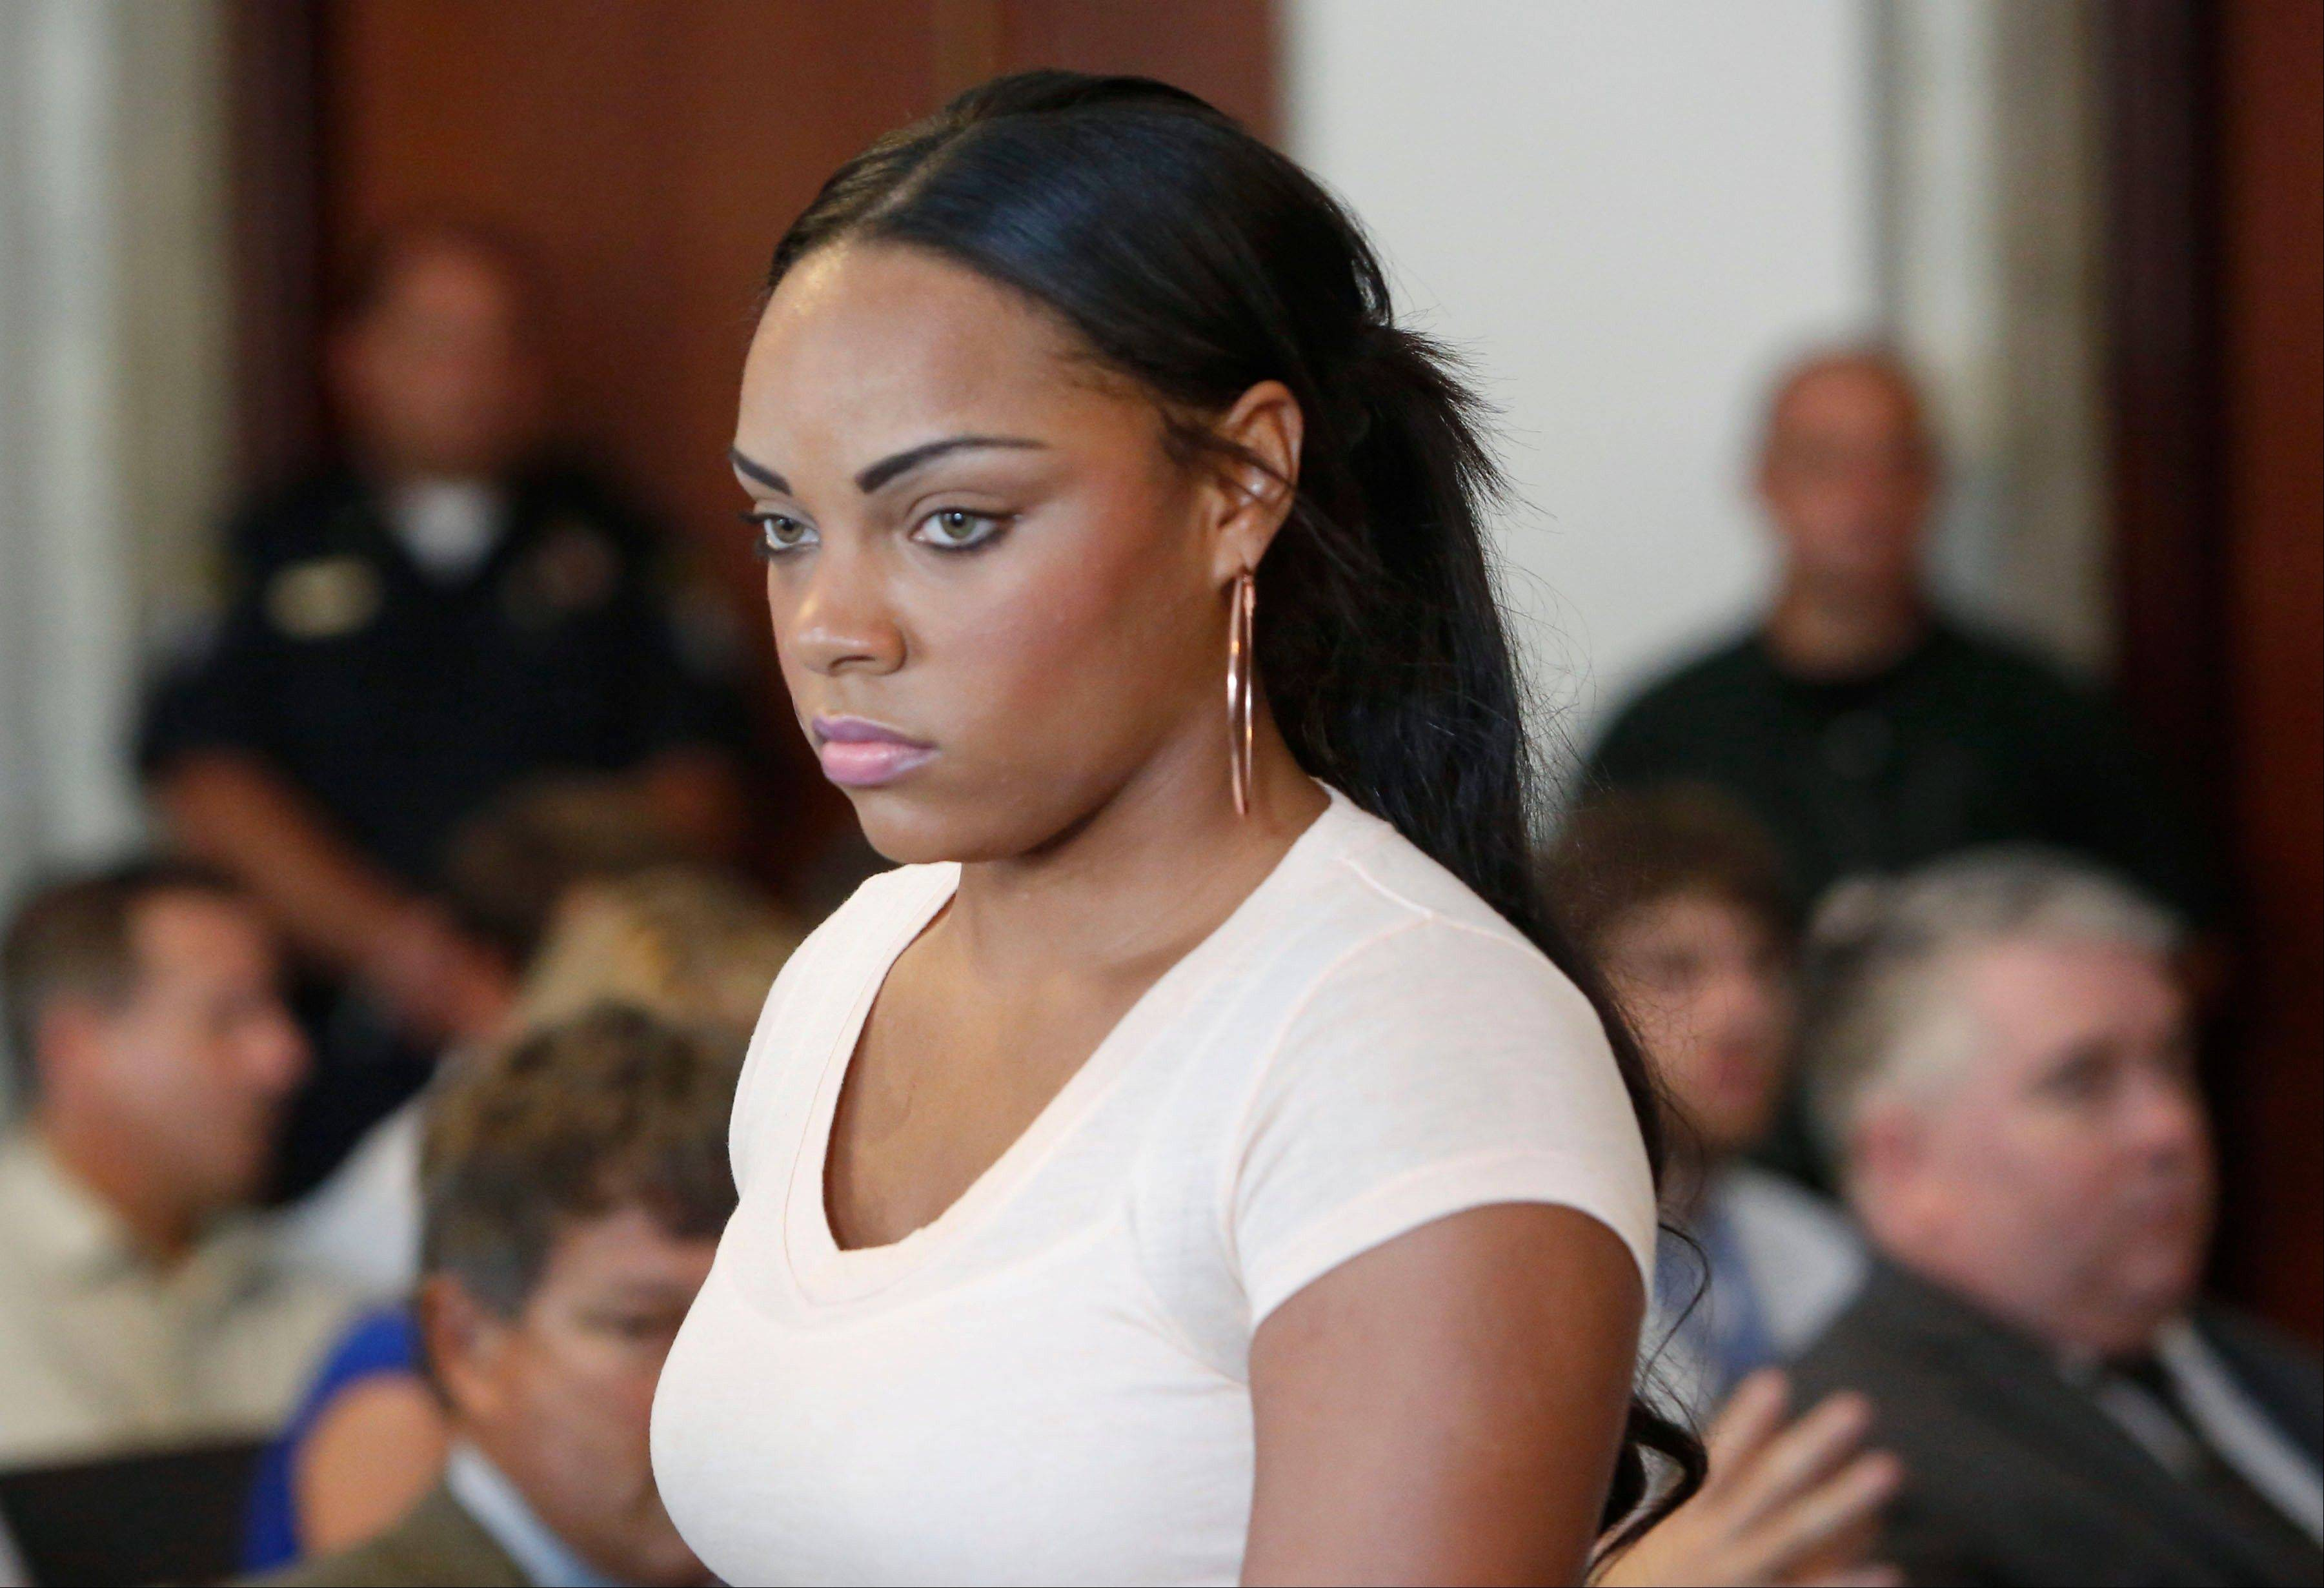 FILE - In this July 24, 2013, file photo, Shayanna Jenkins, fiancee of former New England Patriots NFL football player Aaron Hernandez, arrives at hearing for Hernandez at Attleboro District Courtroom in Attleboro, Mass. A Massachusetts prosecutor said Friday, Sept. 27, 2013, that a grand jury indicted Jenkins on a single count of perjury in relation to the investigation into the June 17 killing of Odin Lloyd. Lloyd had been dating Jenkins' sister. Hernandez has pleaded not guilty to first-degree murder in Lloyd's death and is being held without bail.